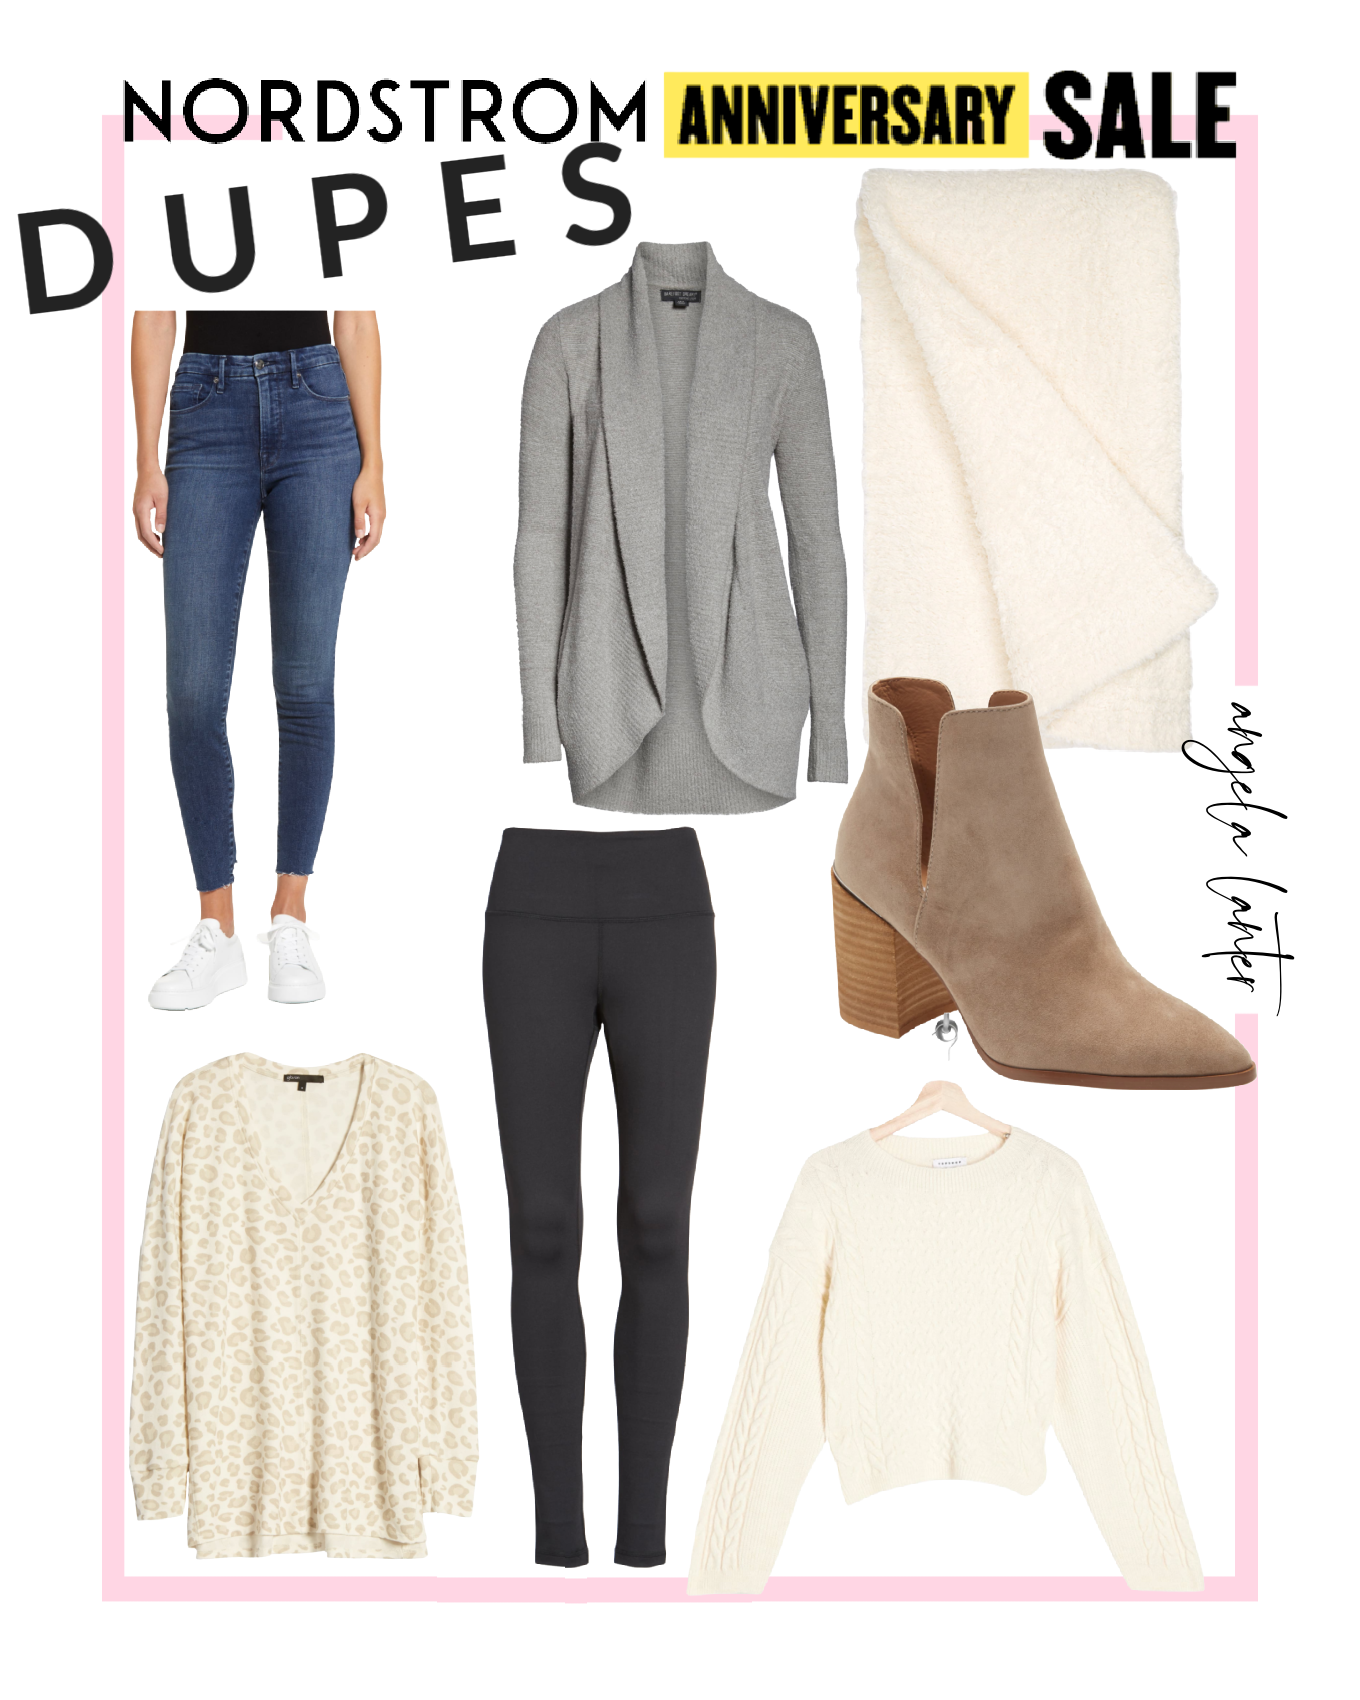 Nordstrom Sale Dupes that will Save you Money!